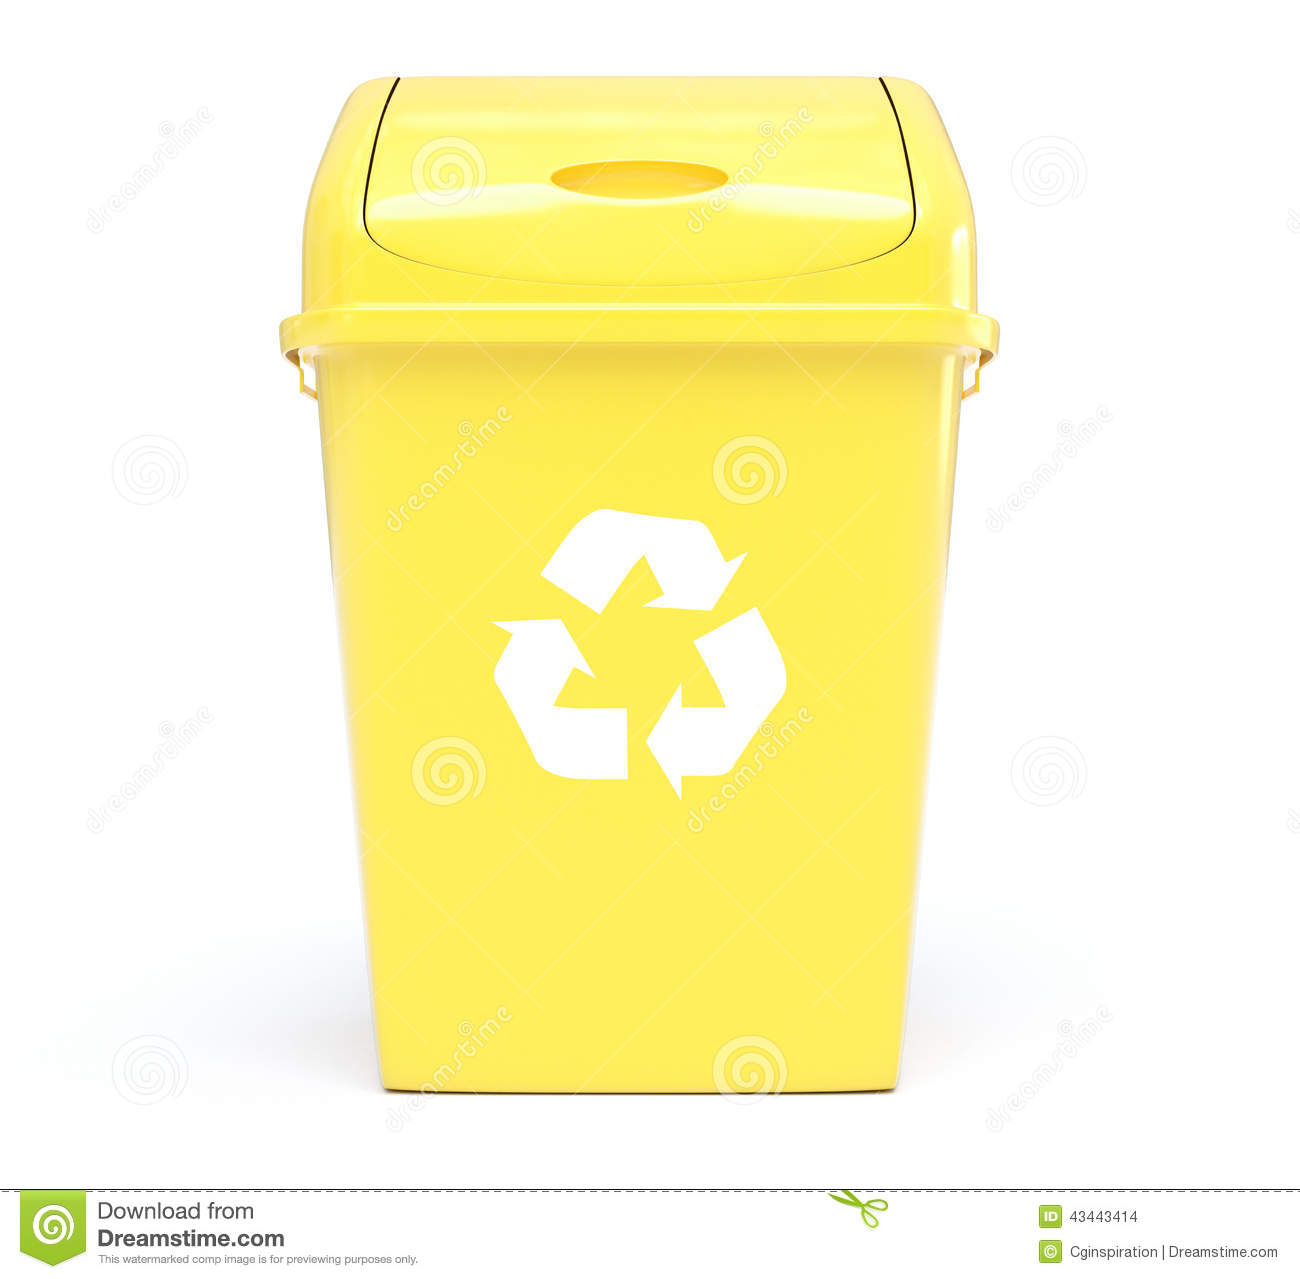 Recycle Bin Stock Illustration - Image: 43443414